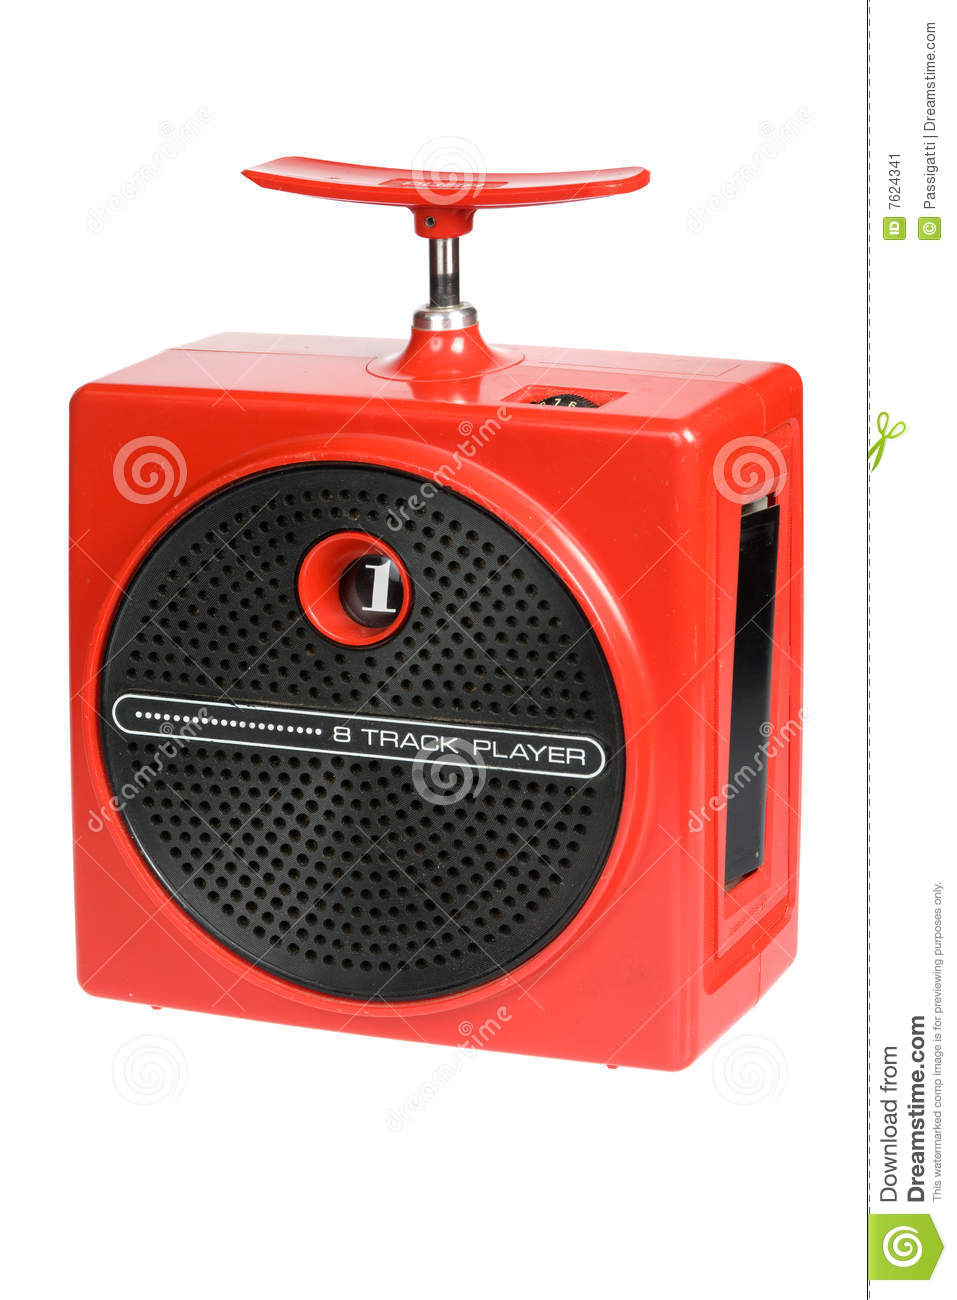 Stock Image Red Retro 8 Track Boombox Image7624341 on nostalgic sound system